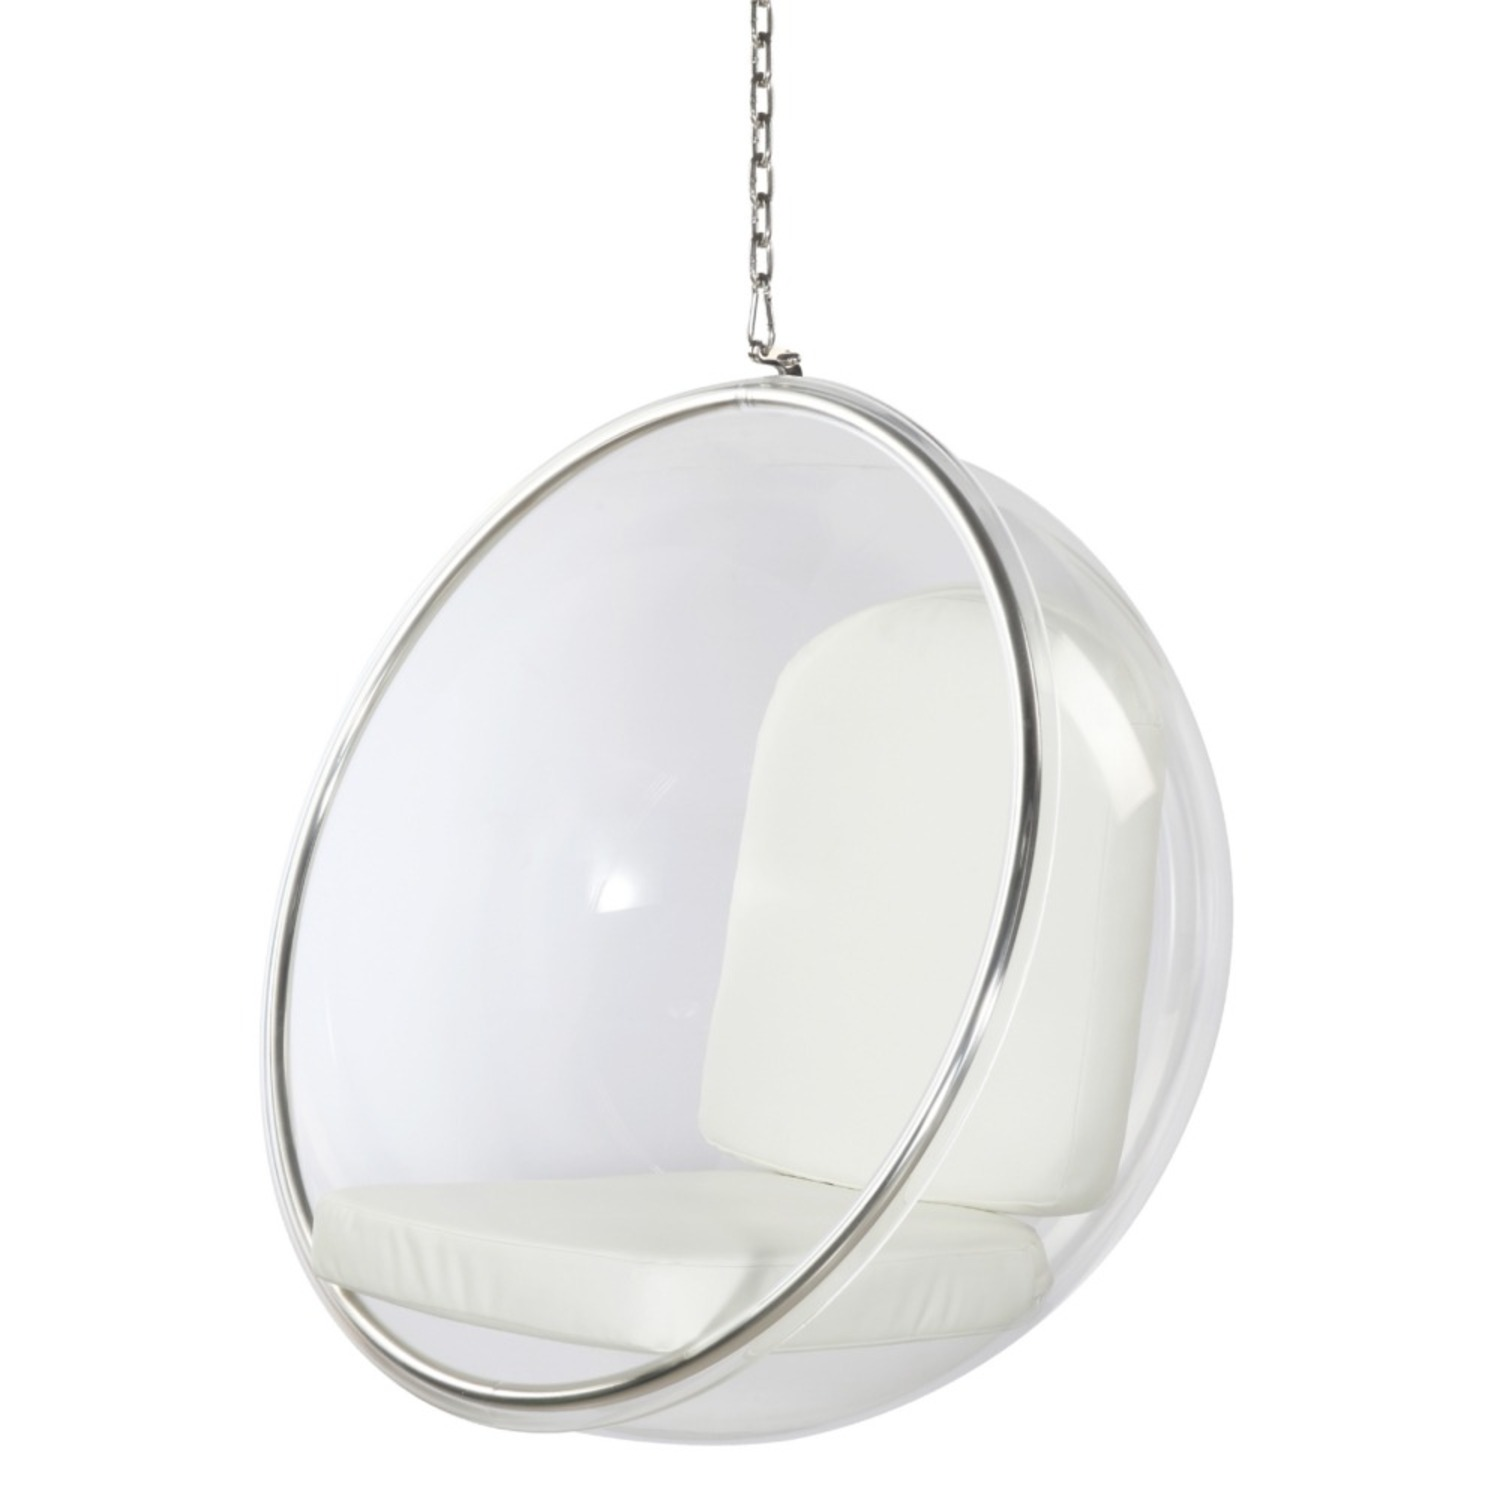 Hanging Chair In Clear Acrylic & White PU Leather - image-4